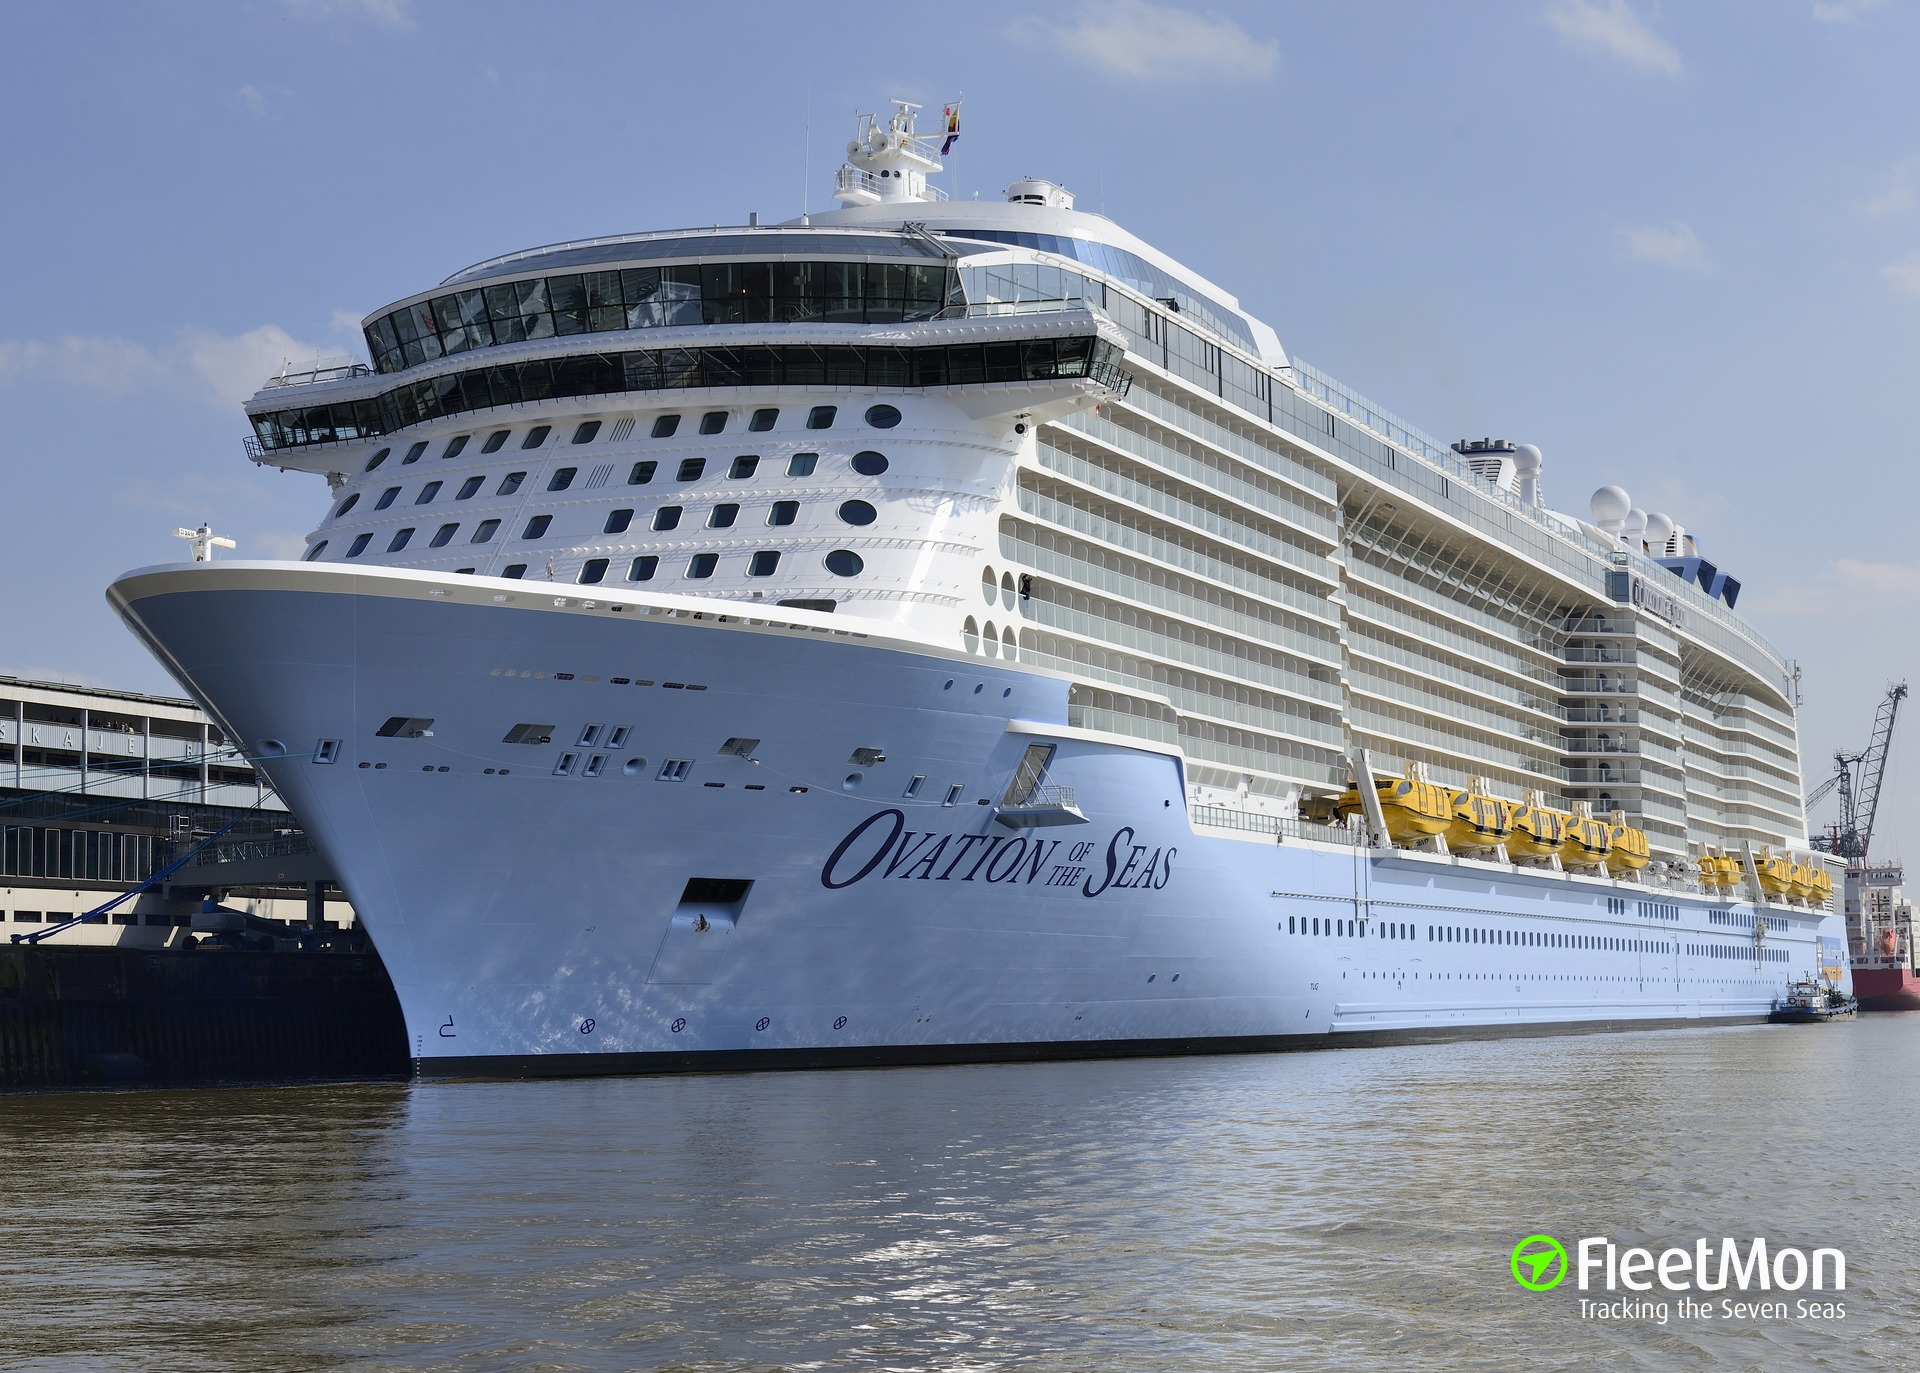 Photo Of Ovation Of The Seas Imo 9697753 Mmsi